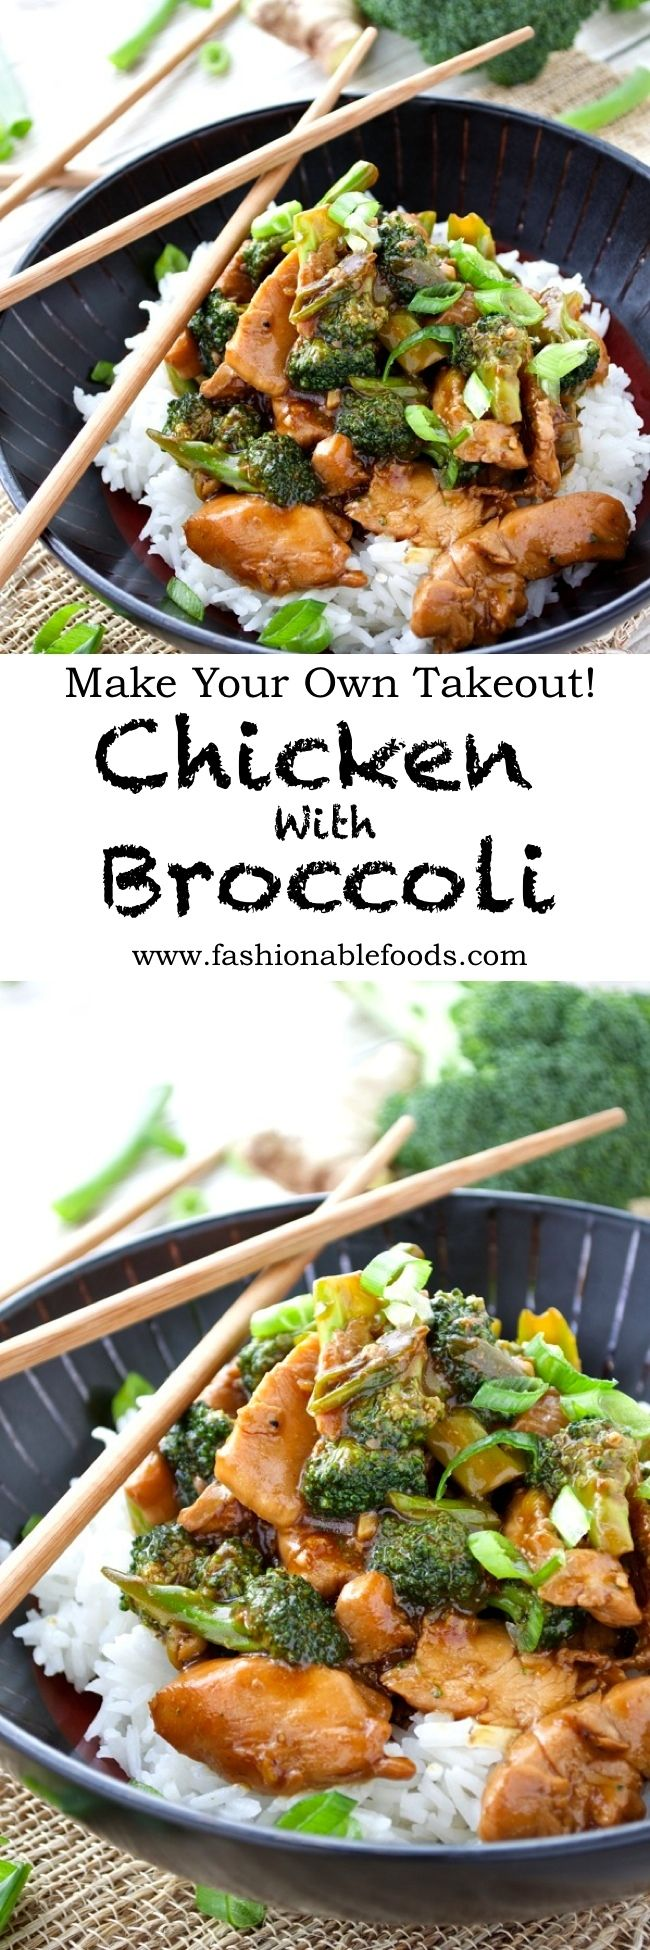 Chicken and broccoli is a popular Chinese takeout dish that's easy to make at home!